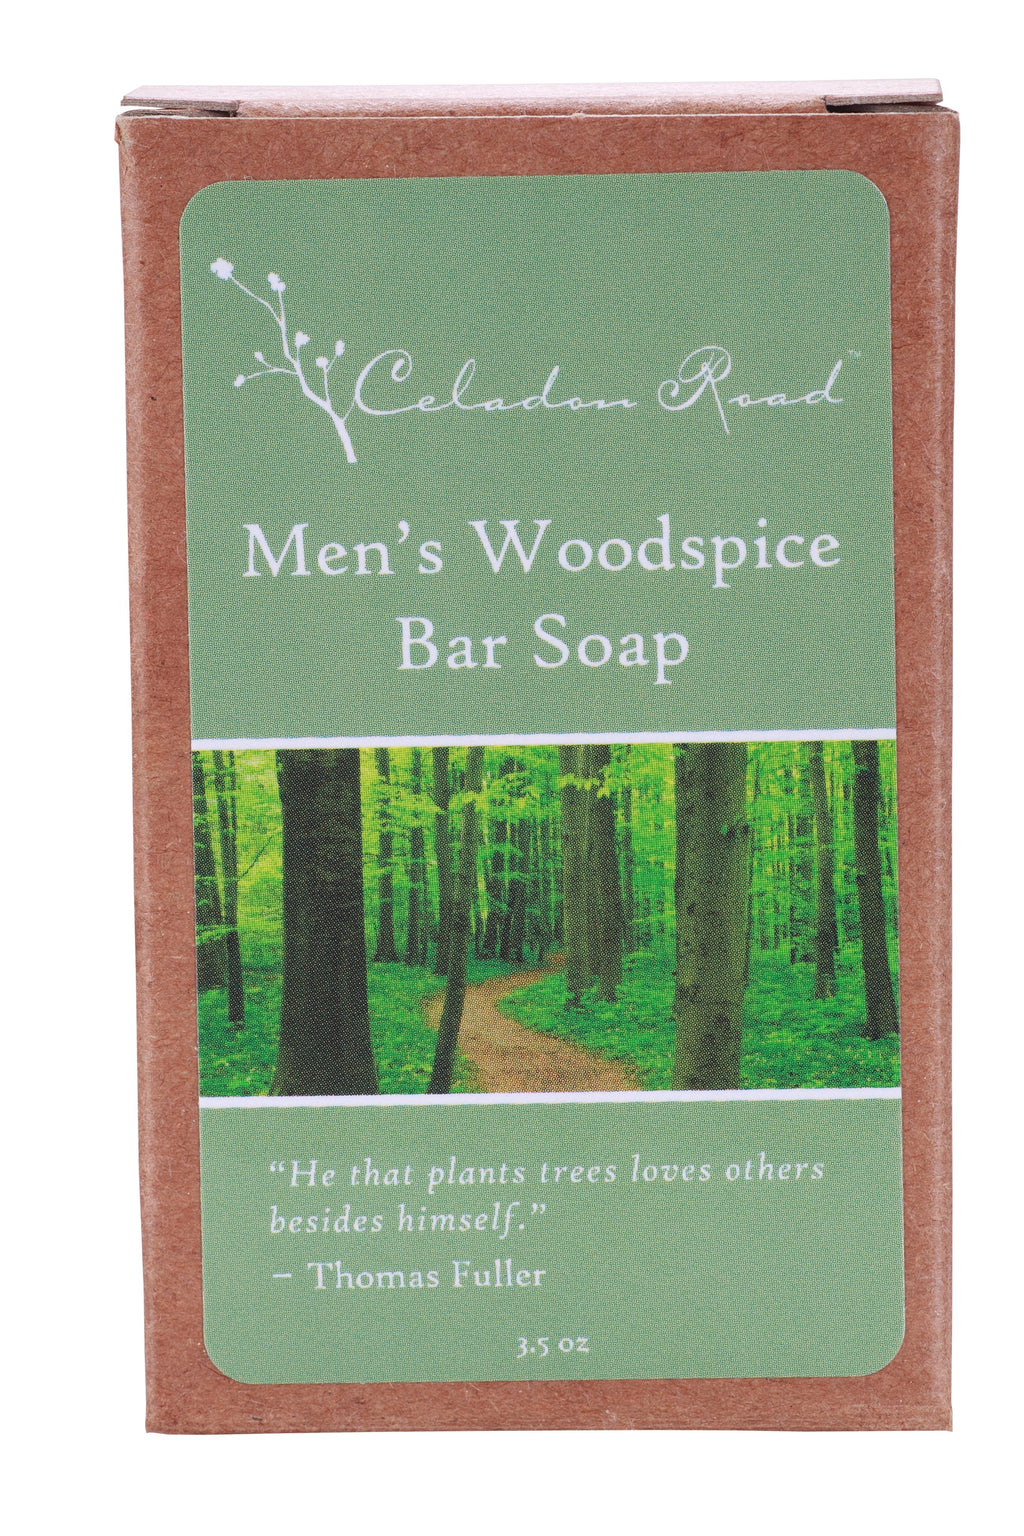 Men's Woodspice Bar Soap- Celadon Road- www.celadonroad.com